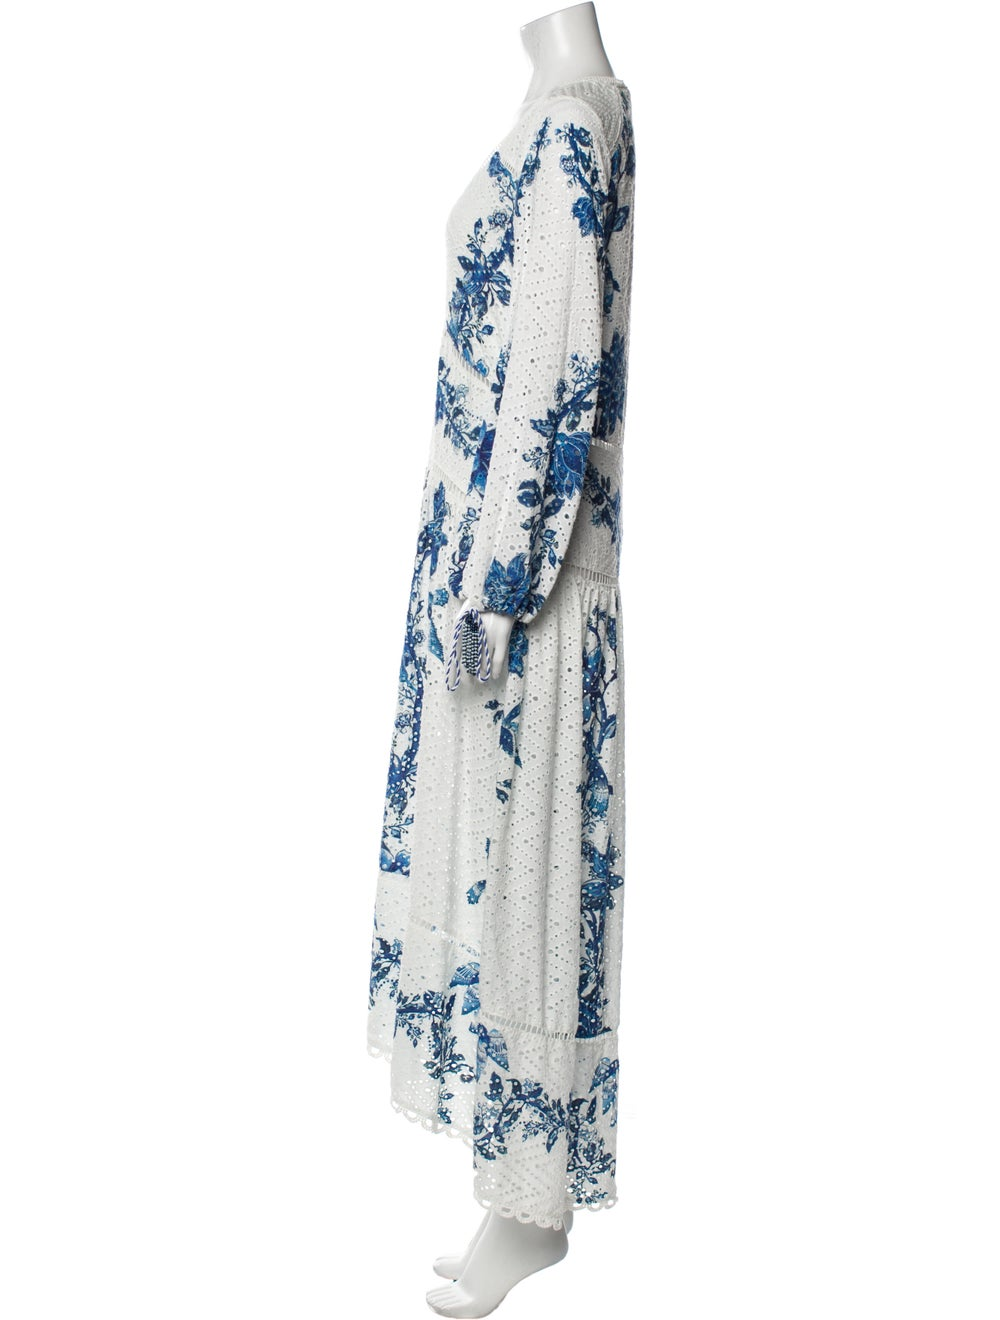 Farm Rio Printed Long Dress White - image 2